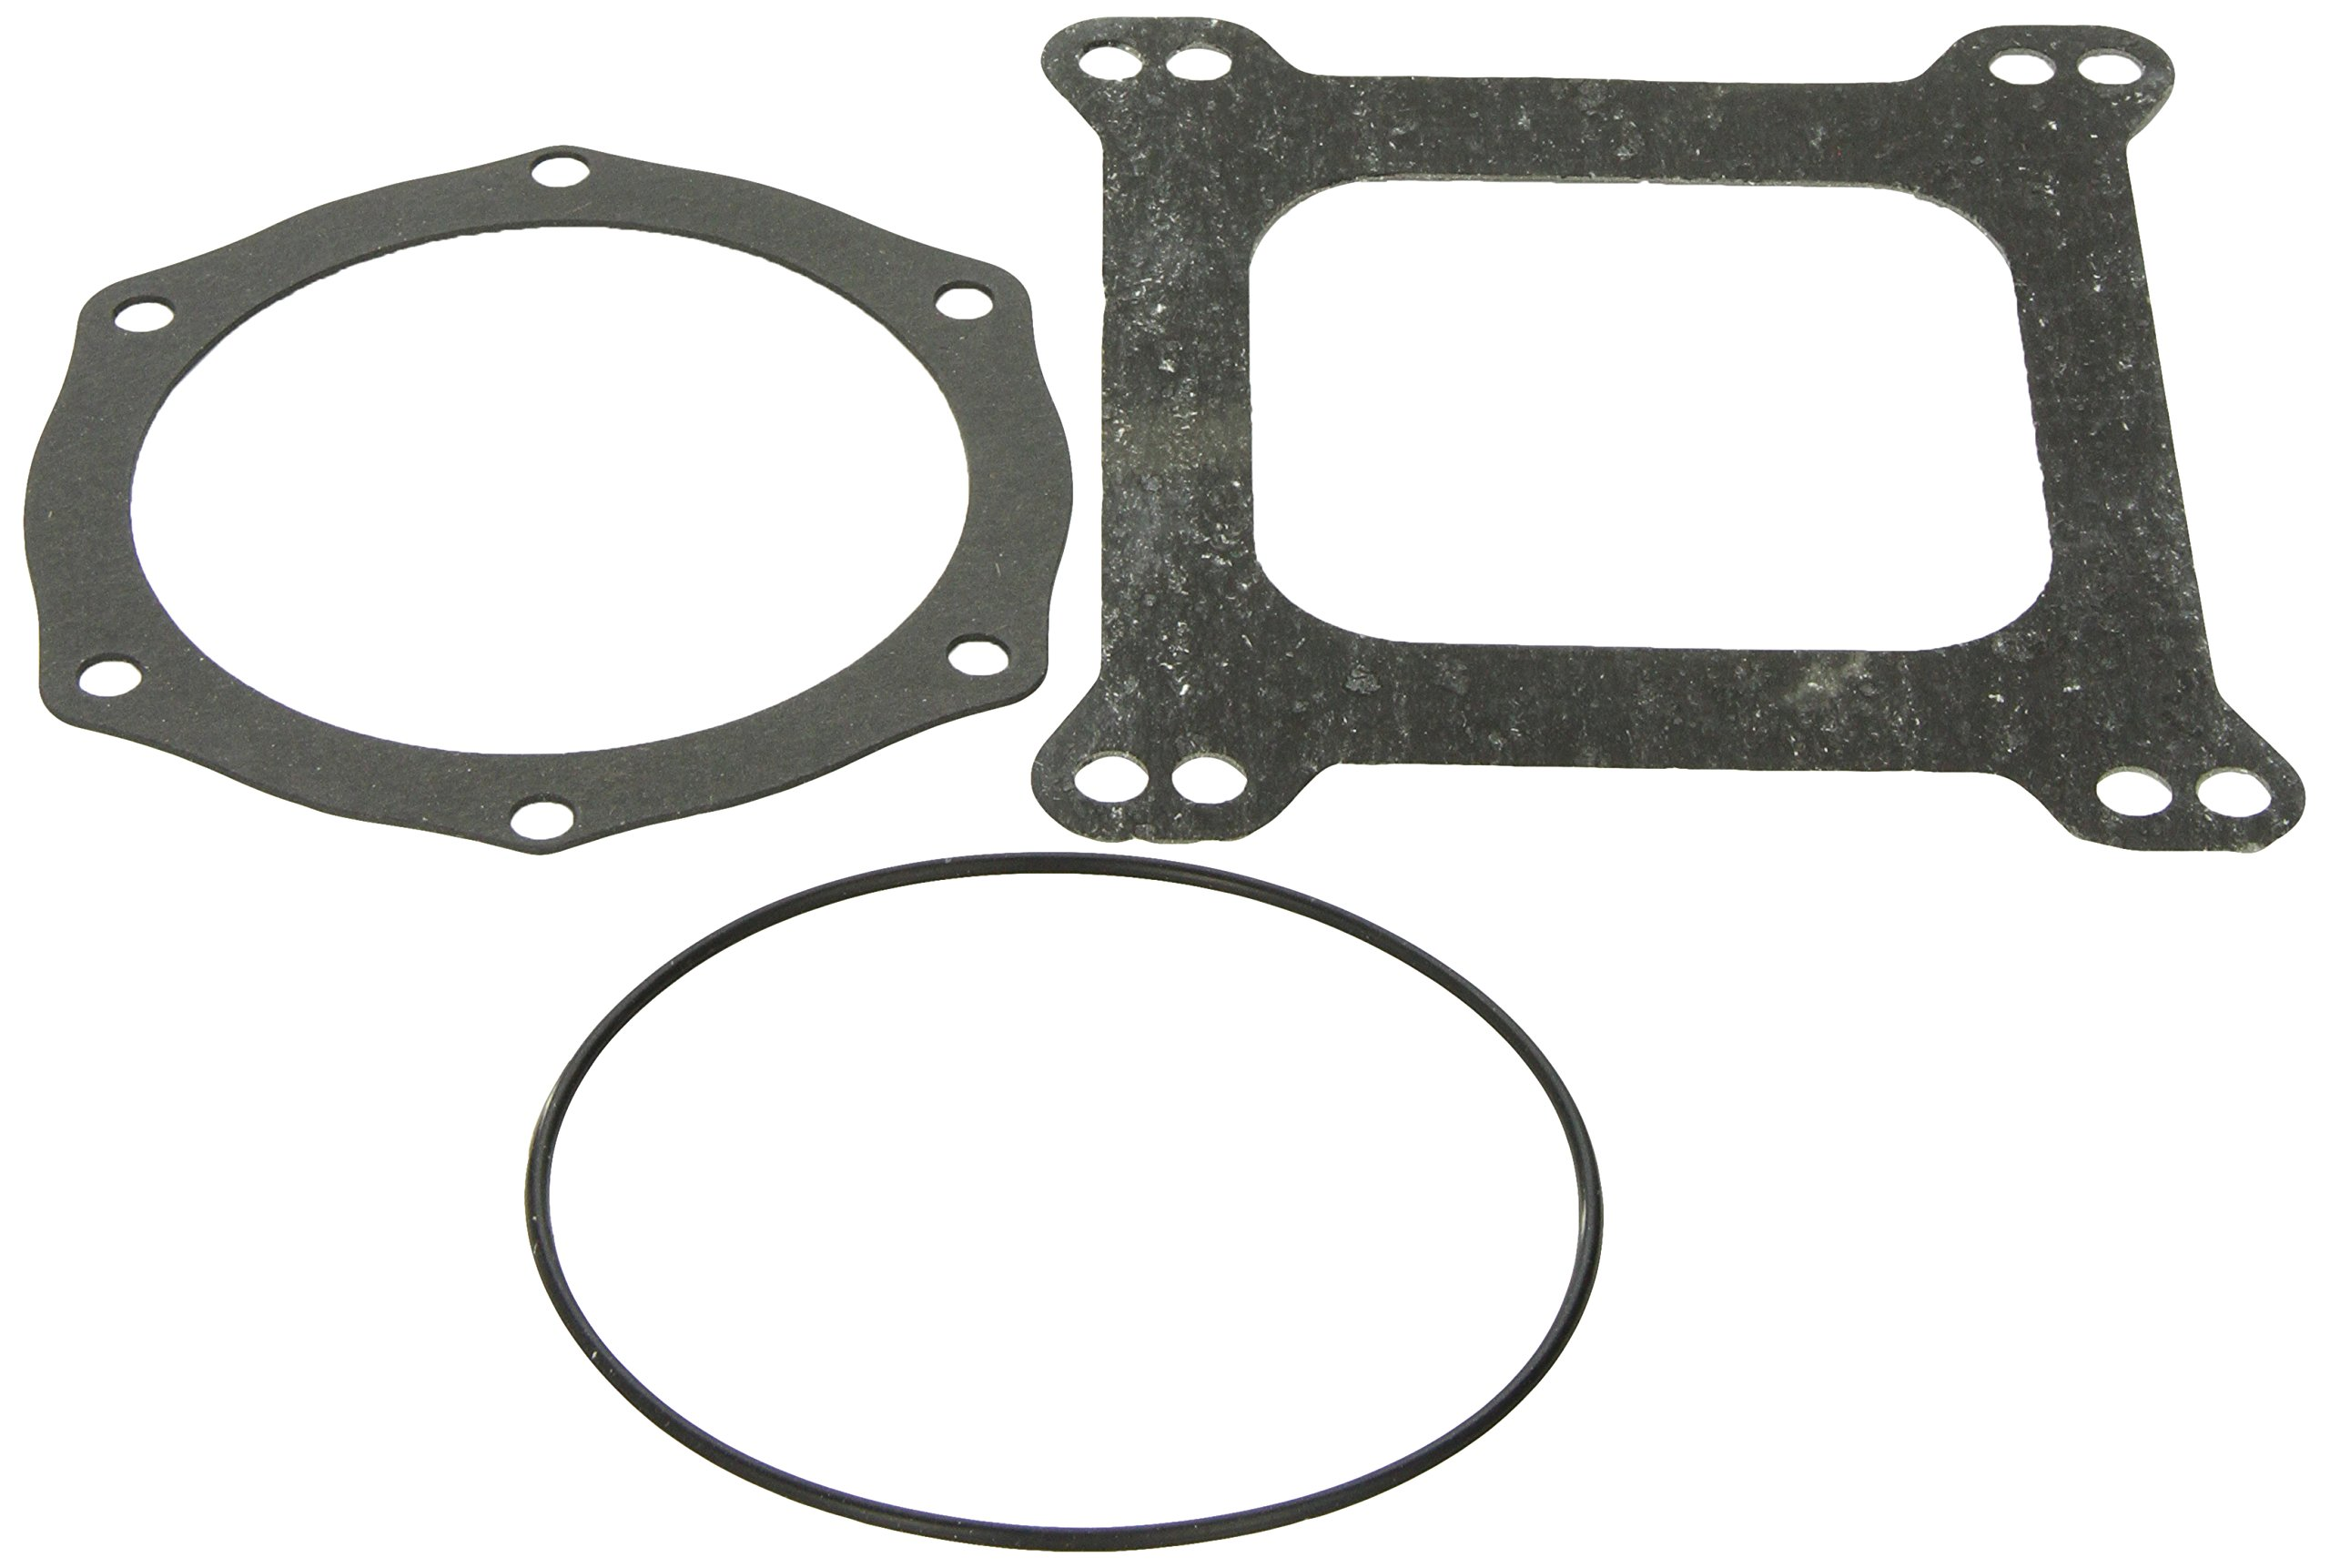 Professional Products 70240 Replacement O-Ring/Gasket Kit (for 70212/70213 Complete Snorkle Assembly)